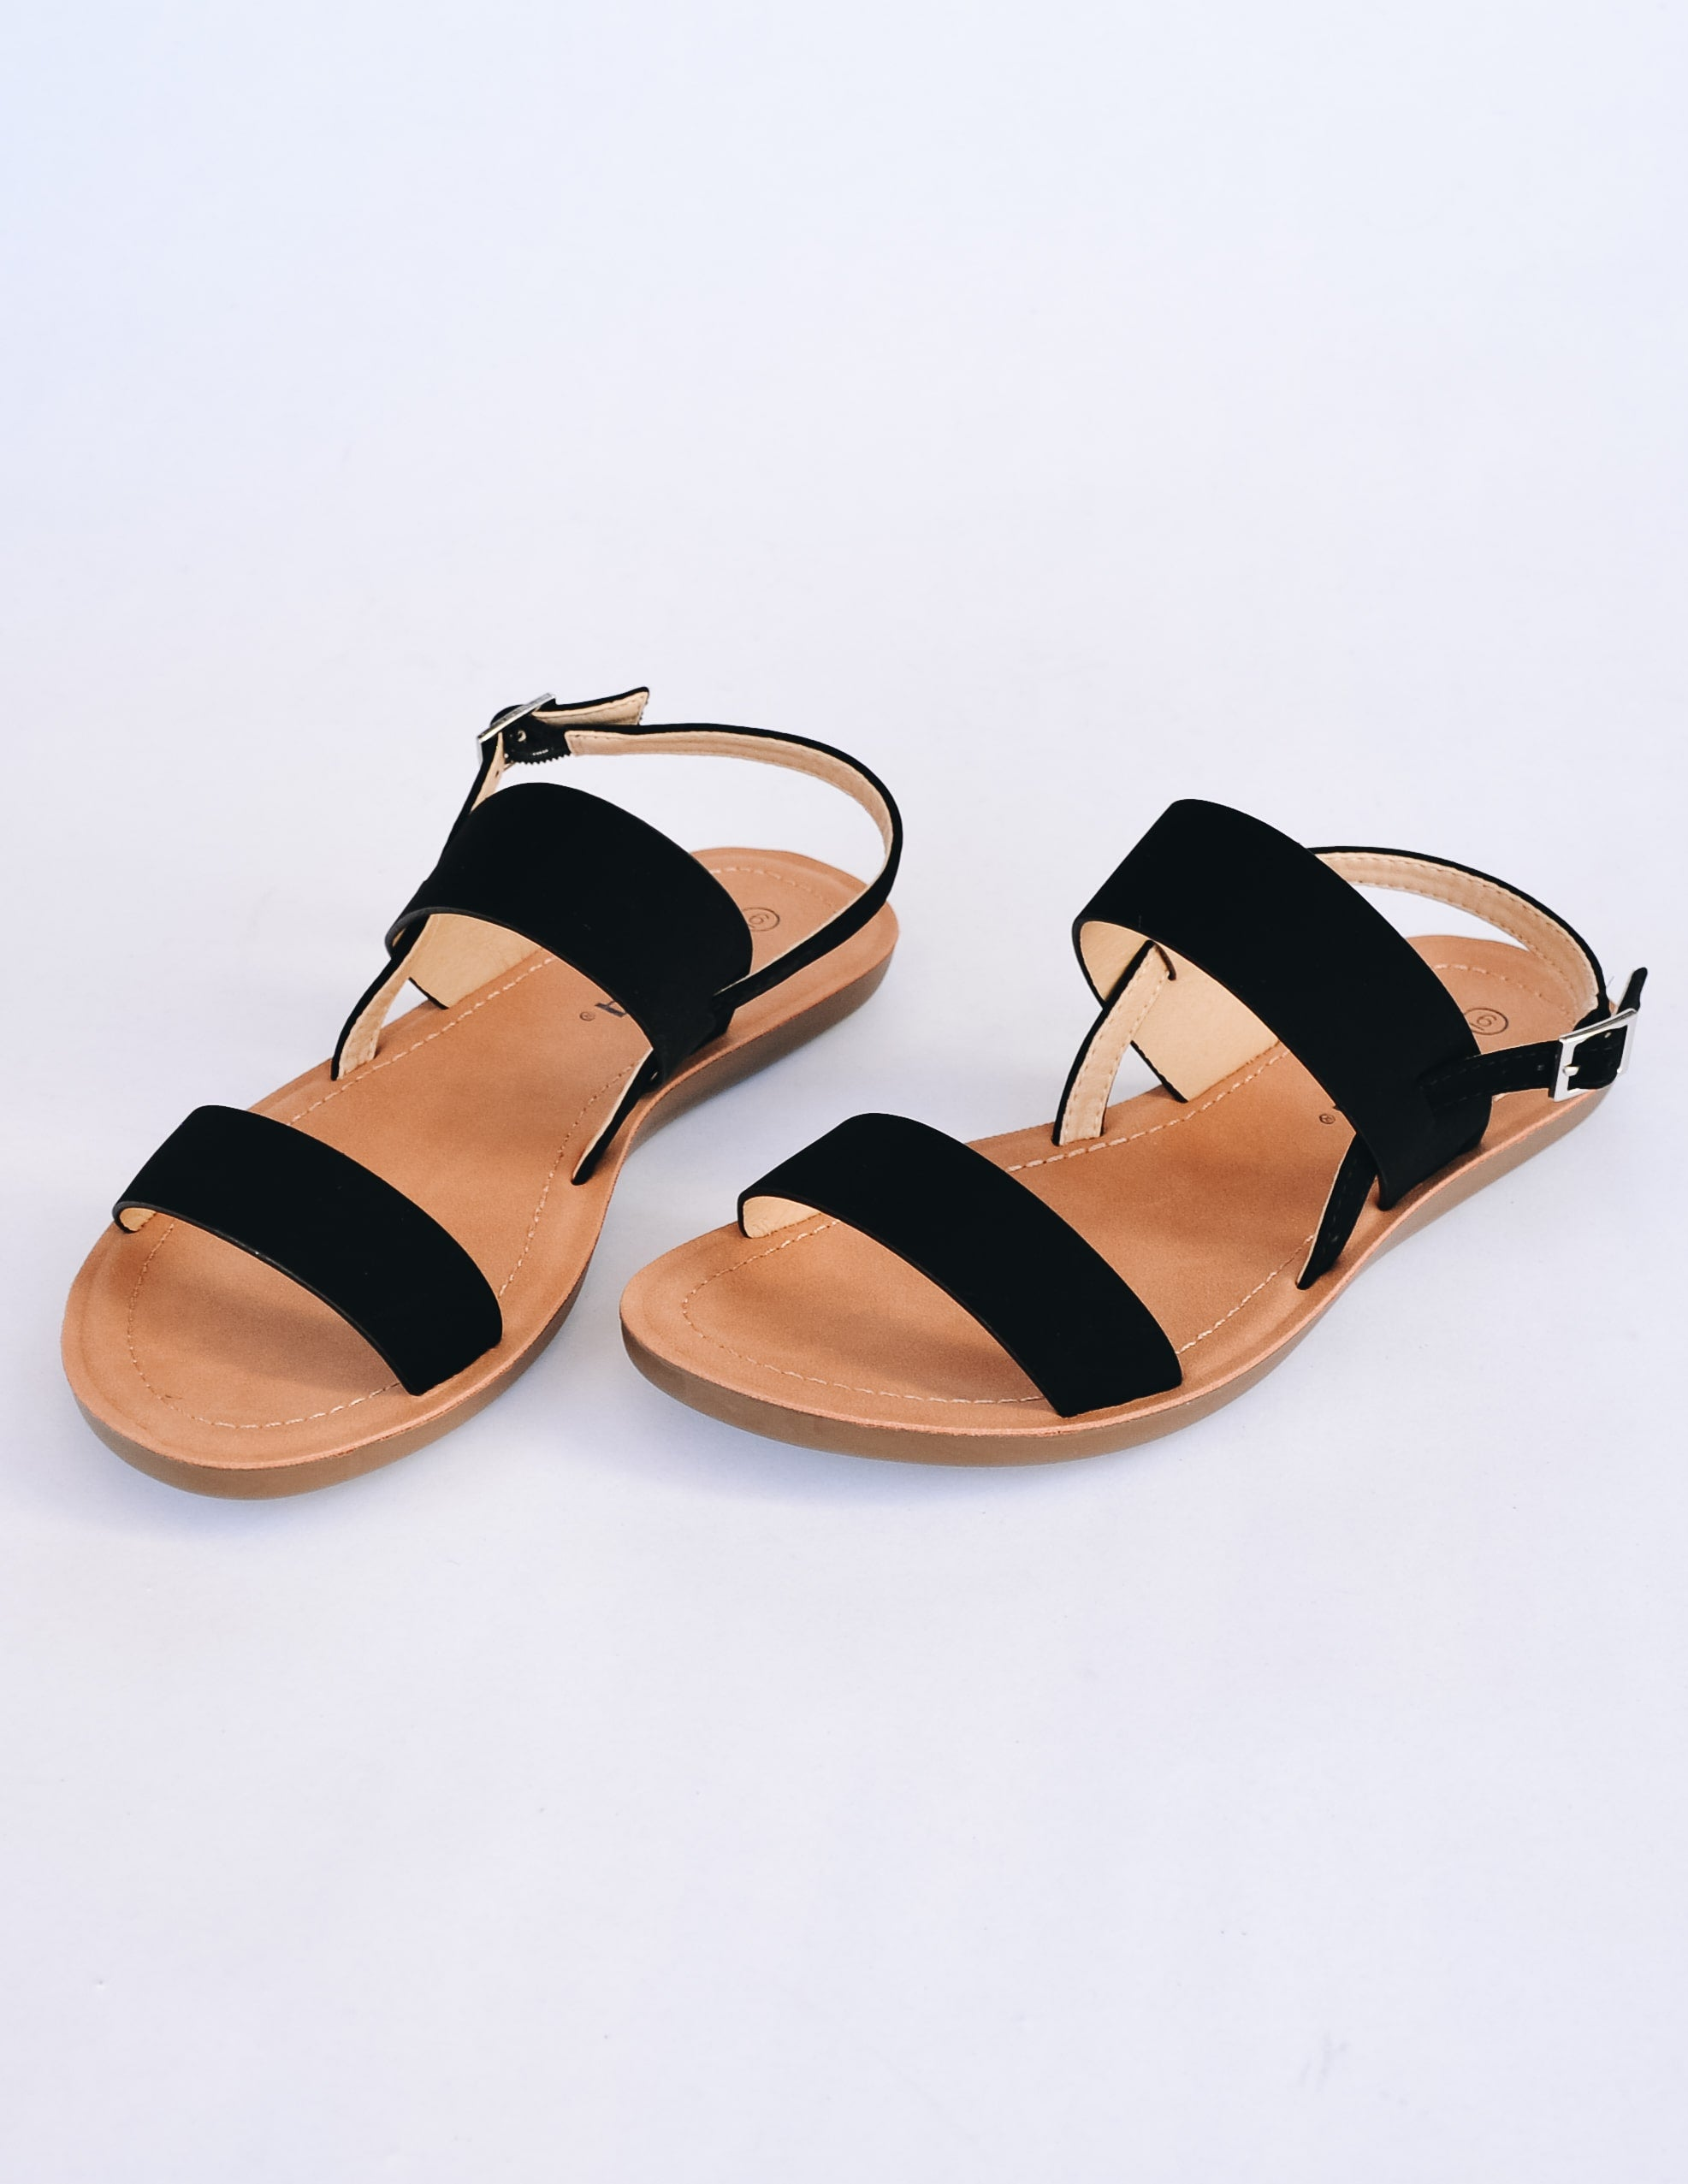 Black strappy sandals with tan insole on white background - elle bleu